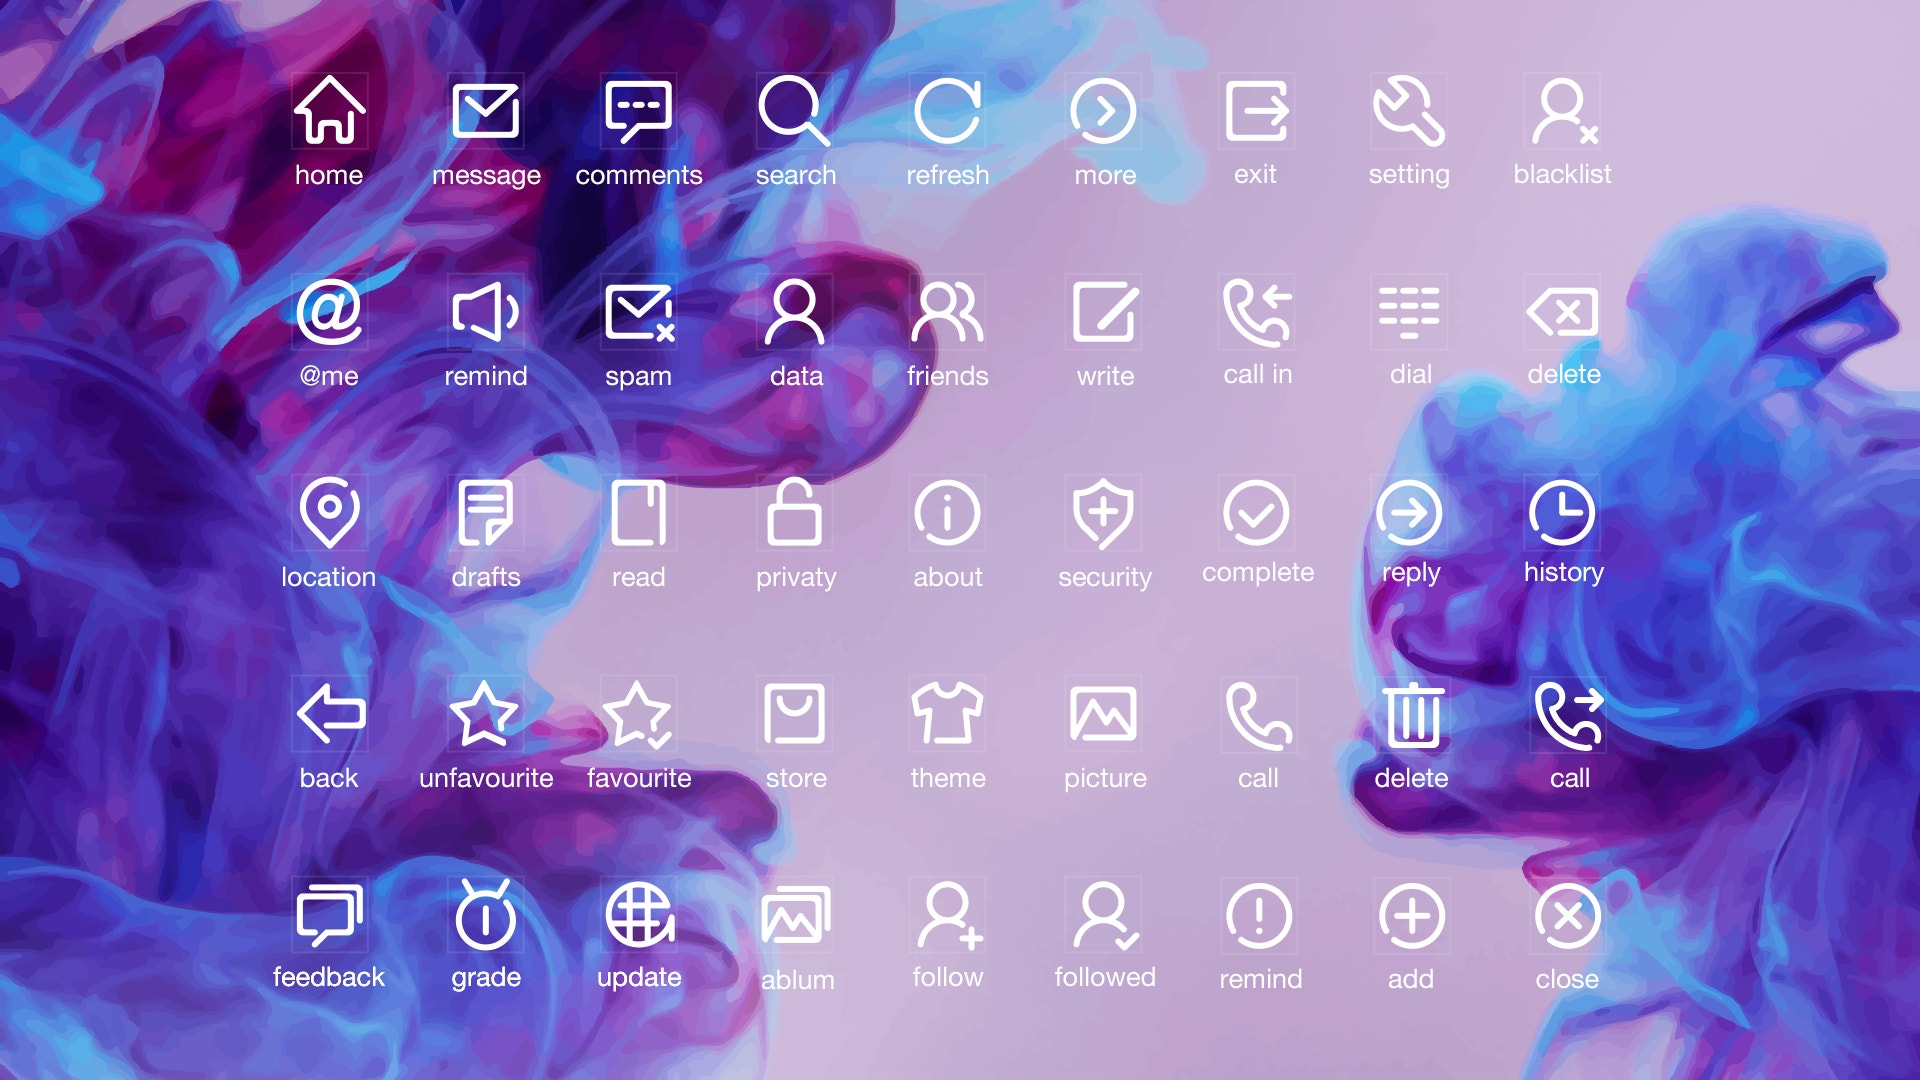 simplelineicons